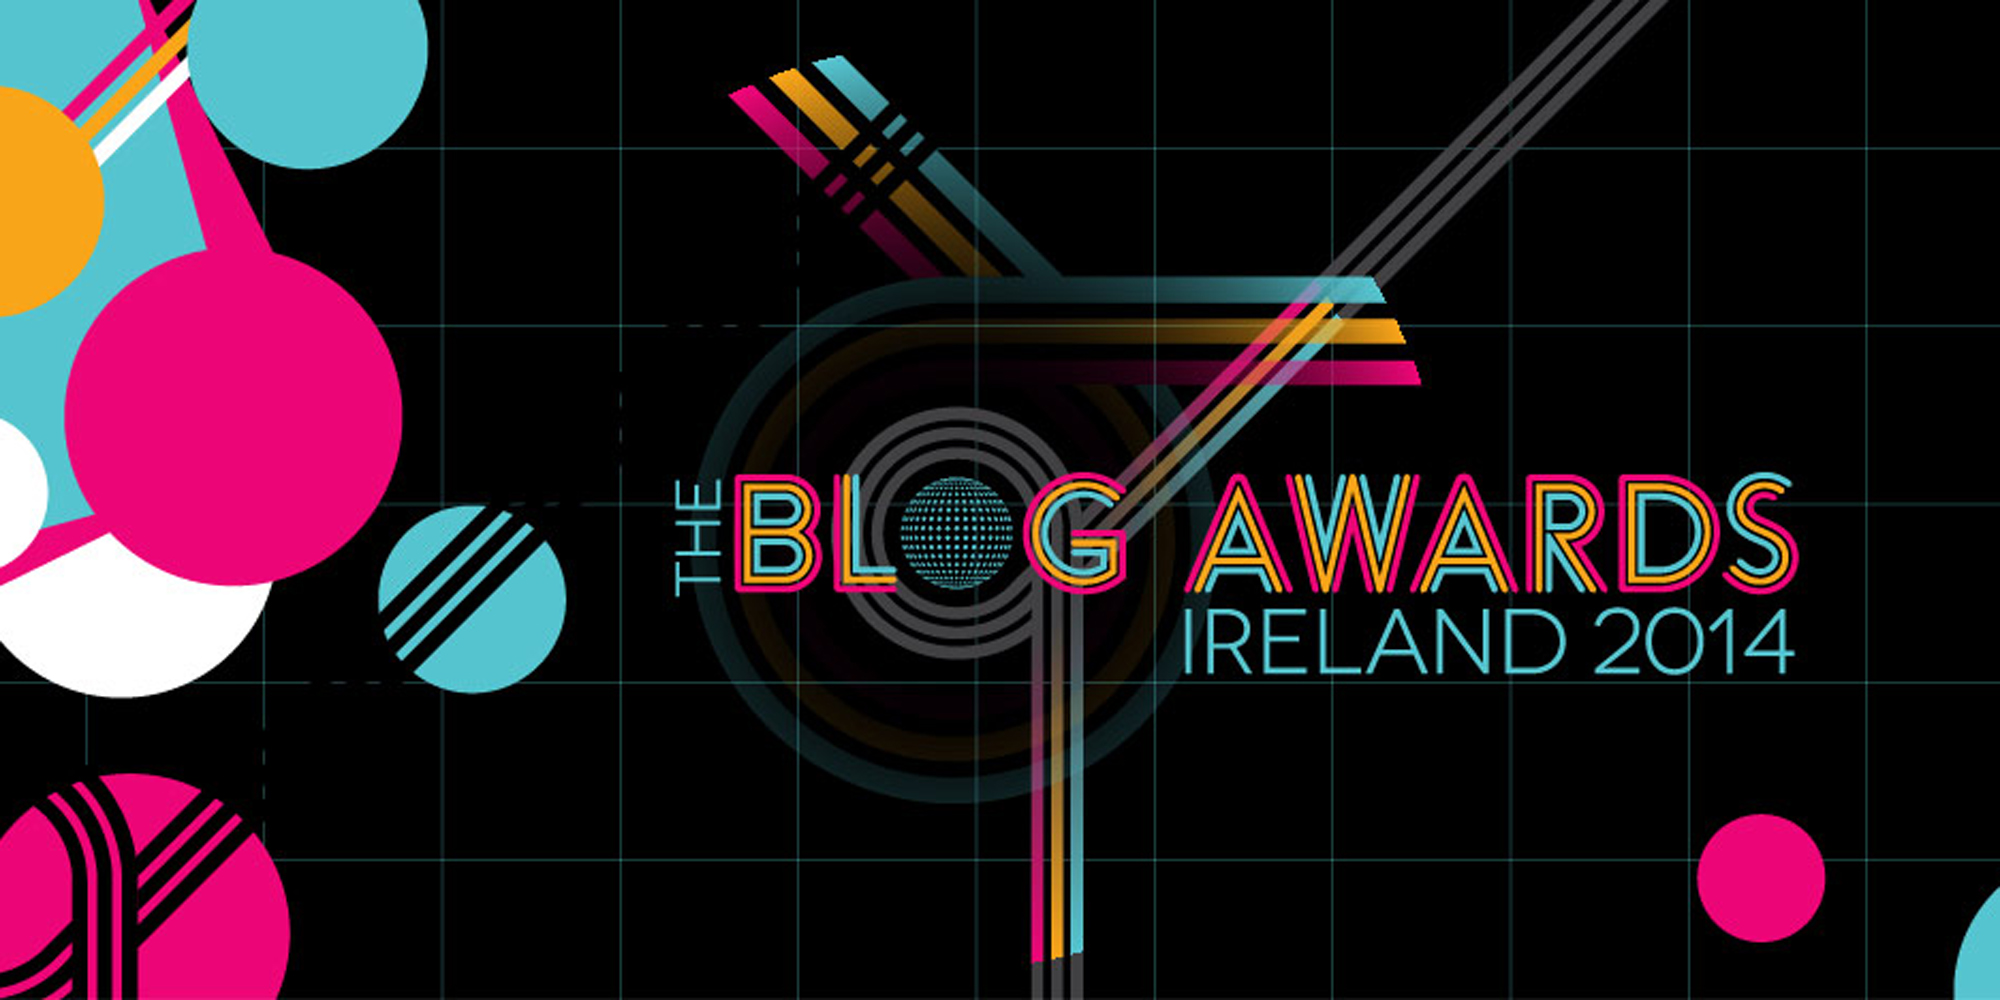 Blog Awards Ireland Nomination - Pikalily Food Blog